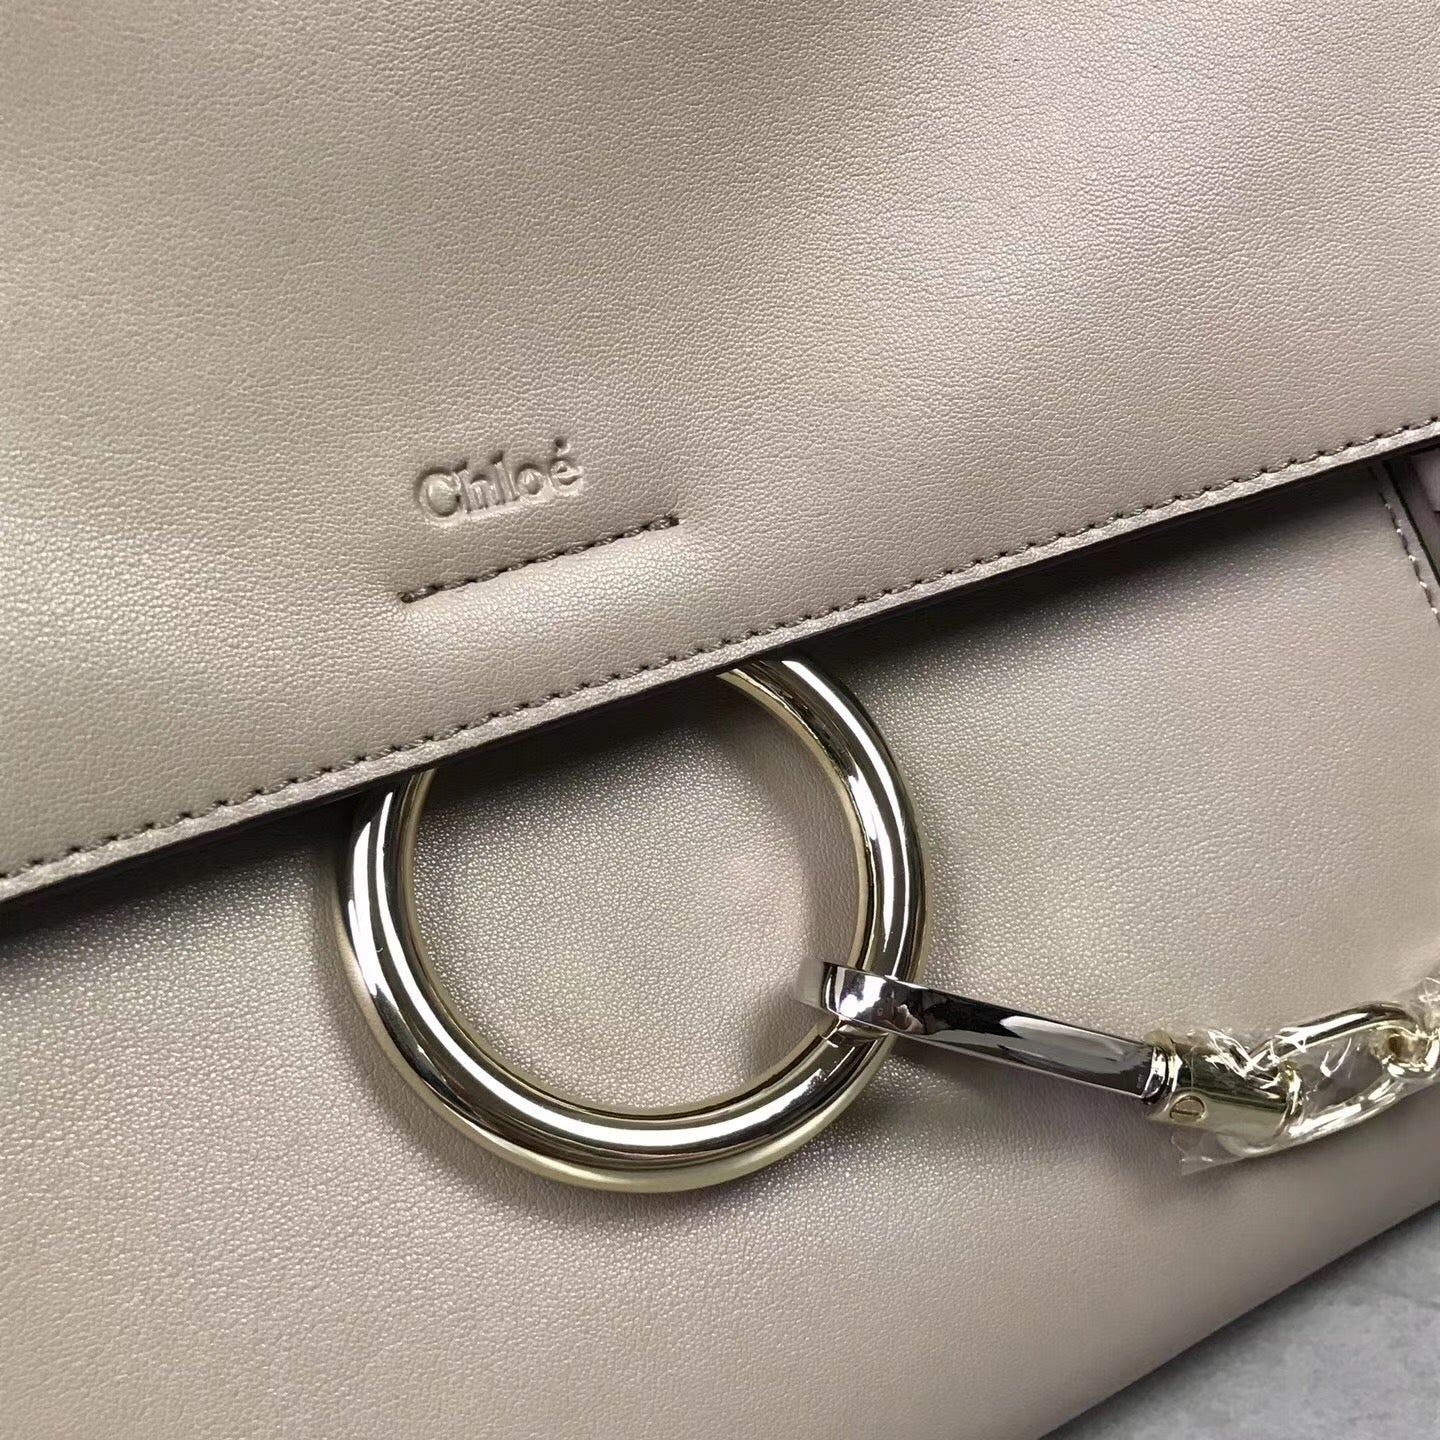 Bolsa Faye Day Bag Chloe - Loja Must Have